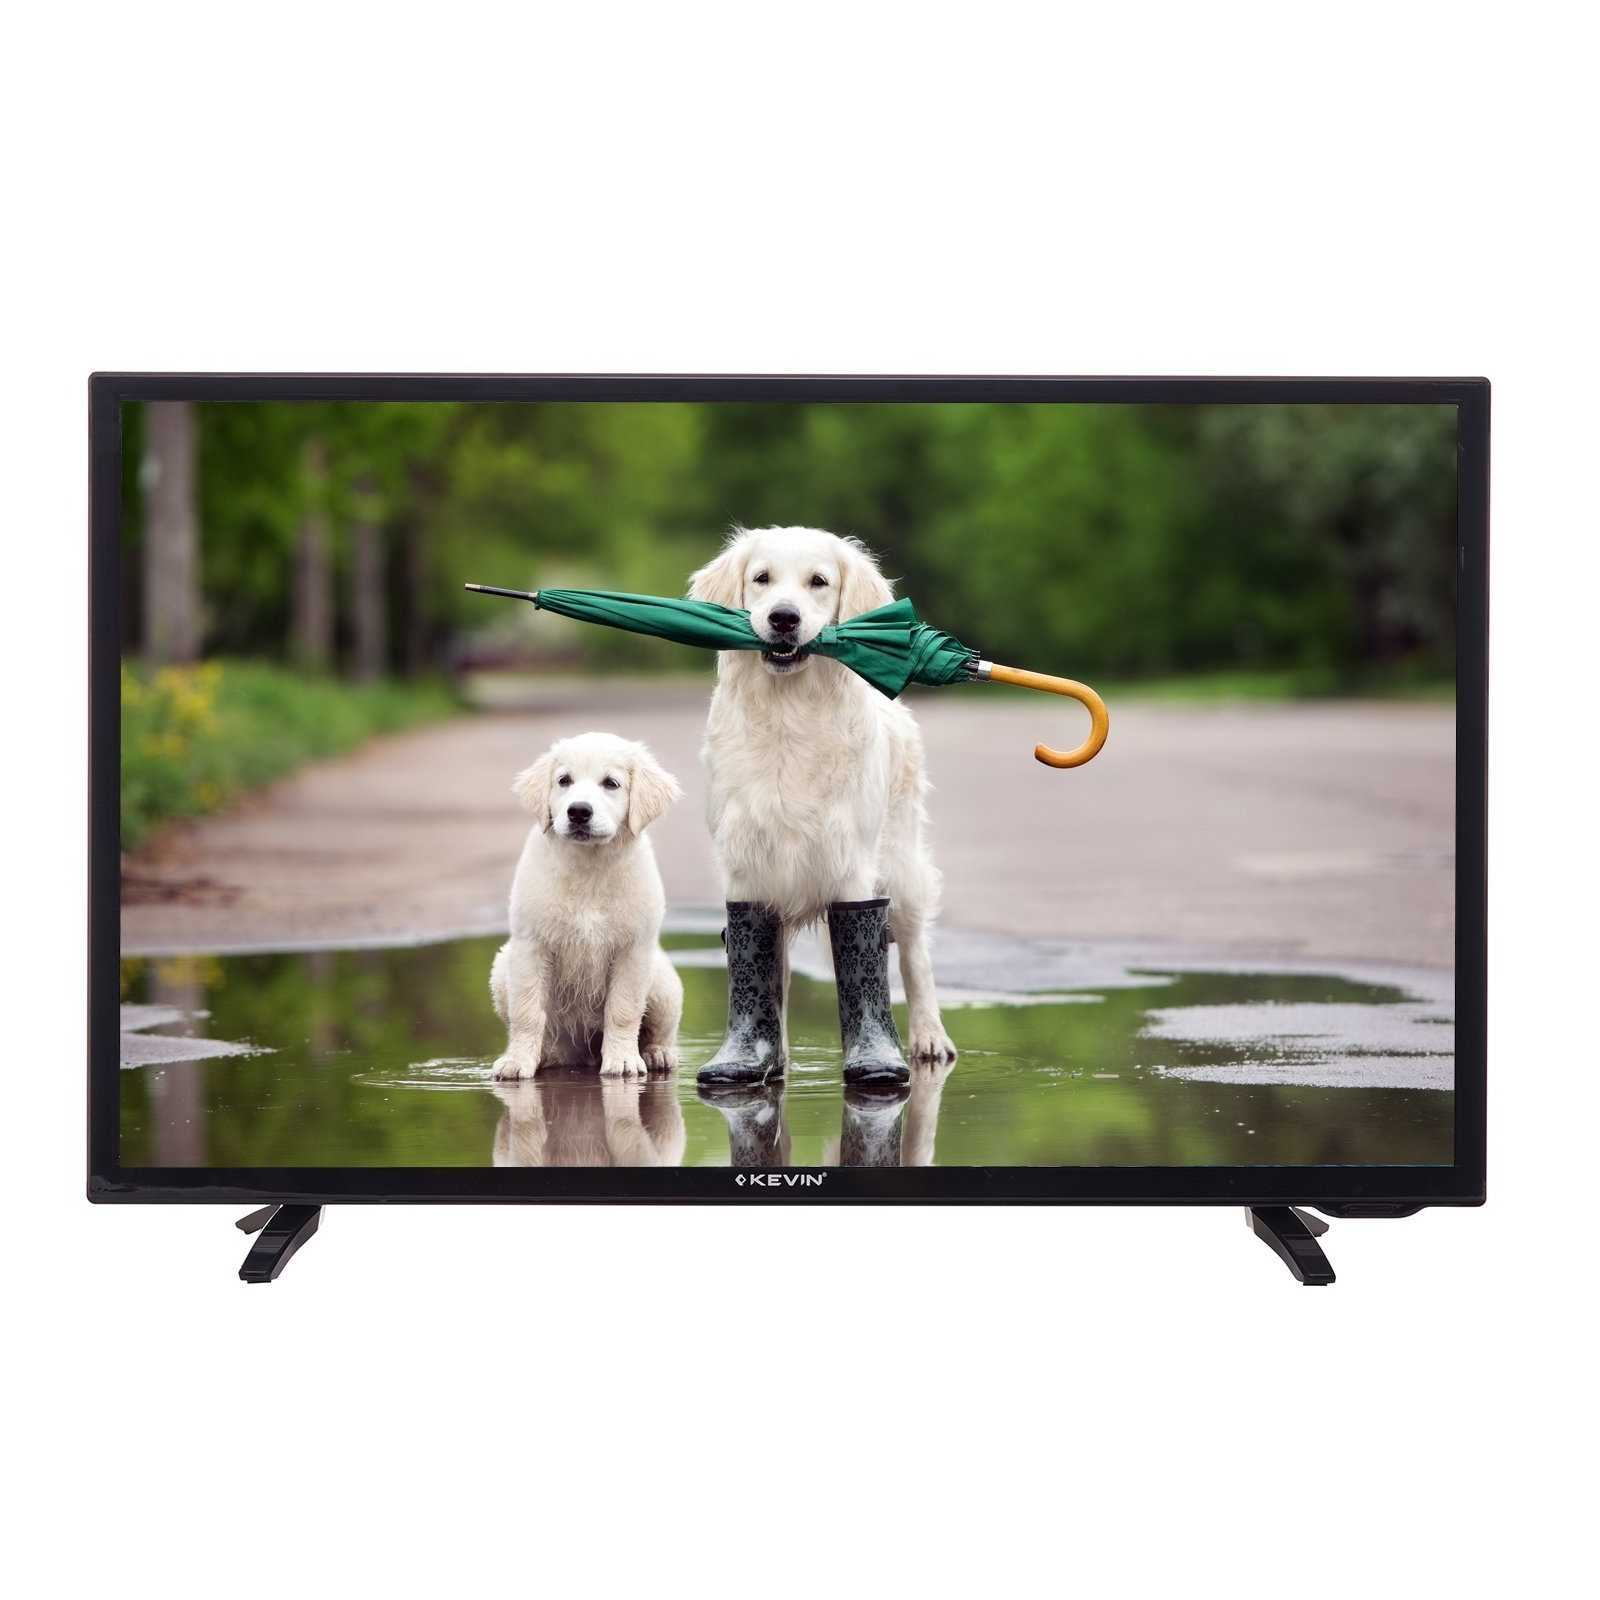 5bc4f6b48d7 Kevin KN10 32 Inch HD Ready LED Television Price  30 May 2019 ...